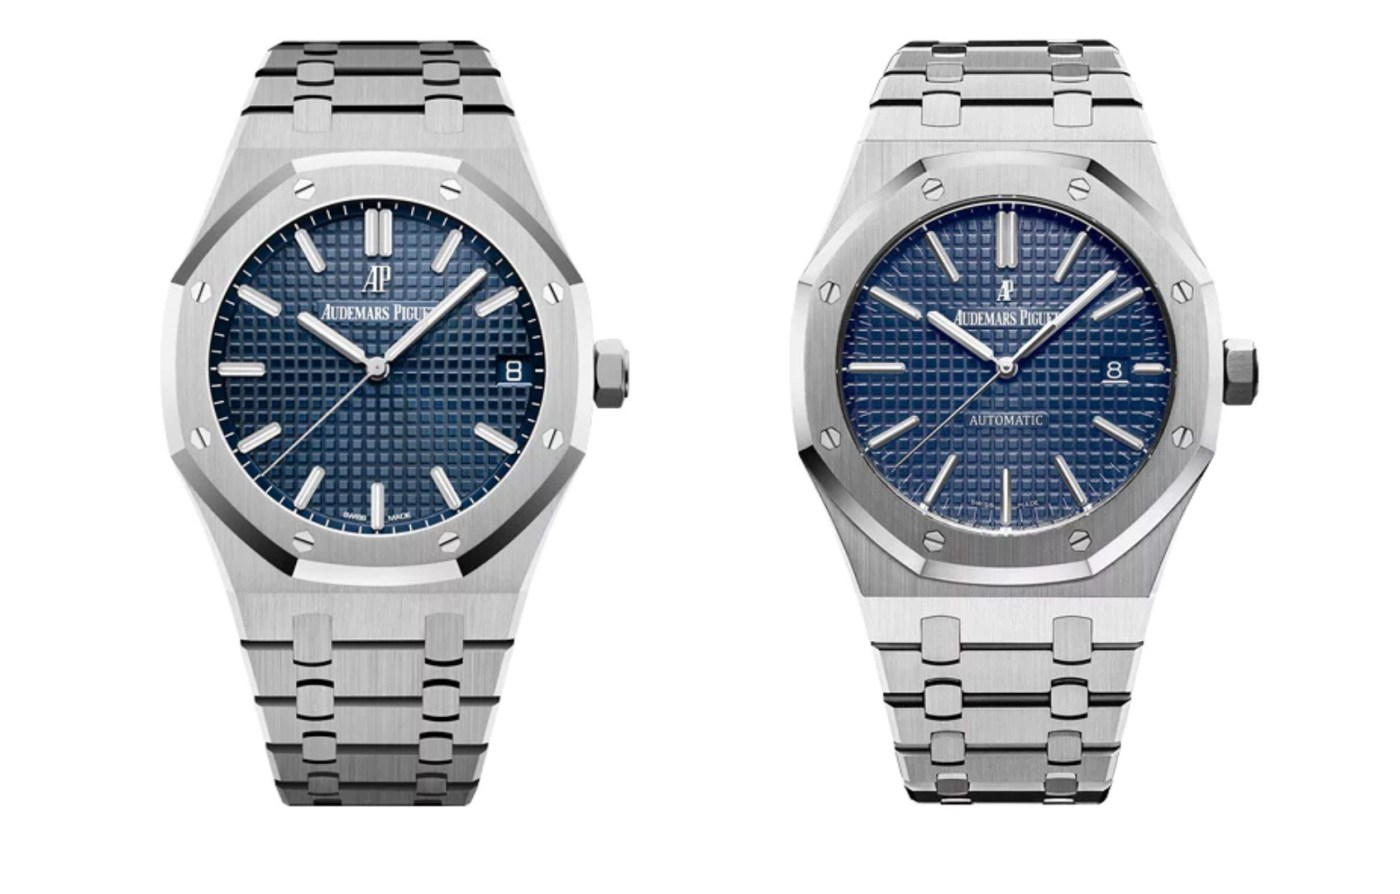 Audemars Piguet Royal Oak 15500 vs. 15400